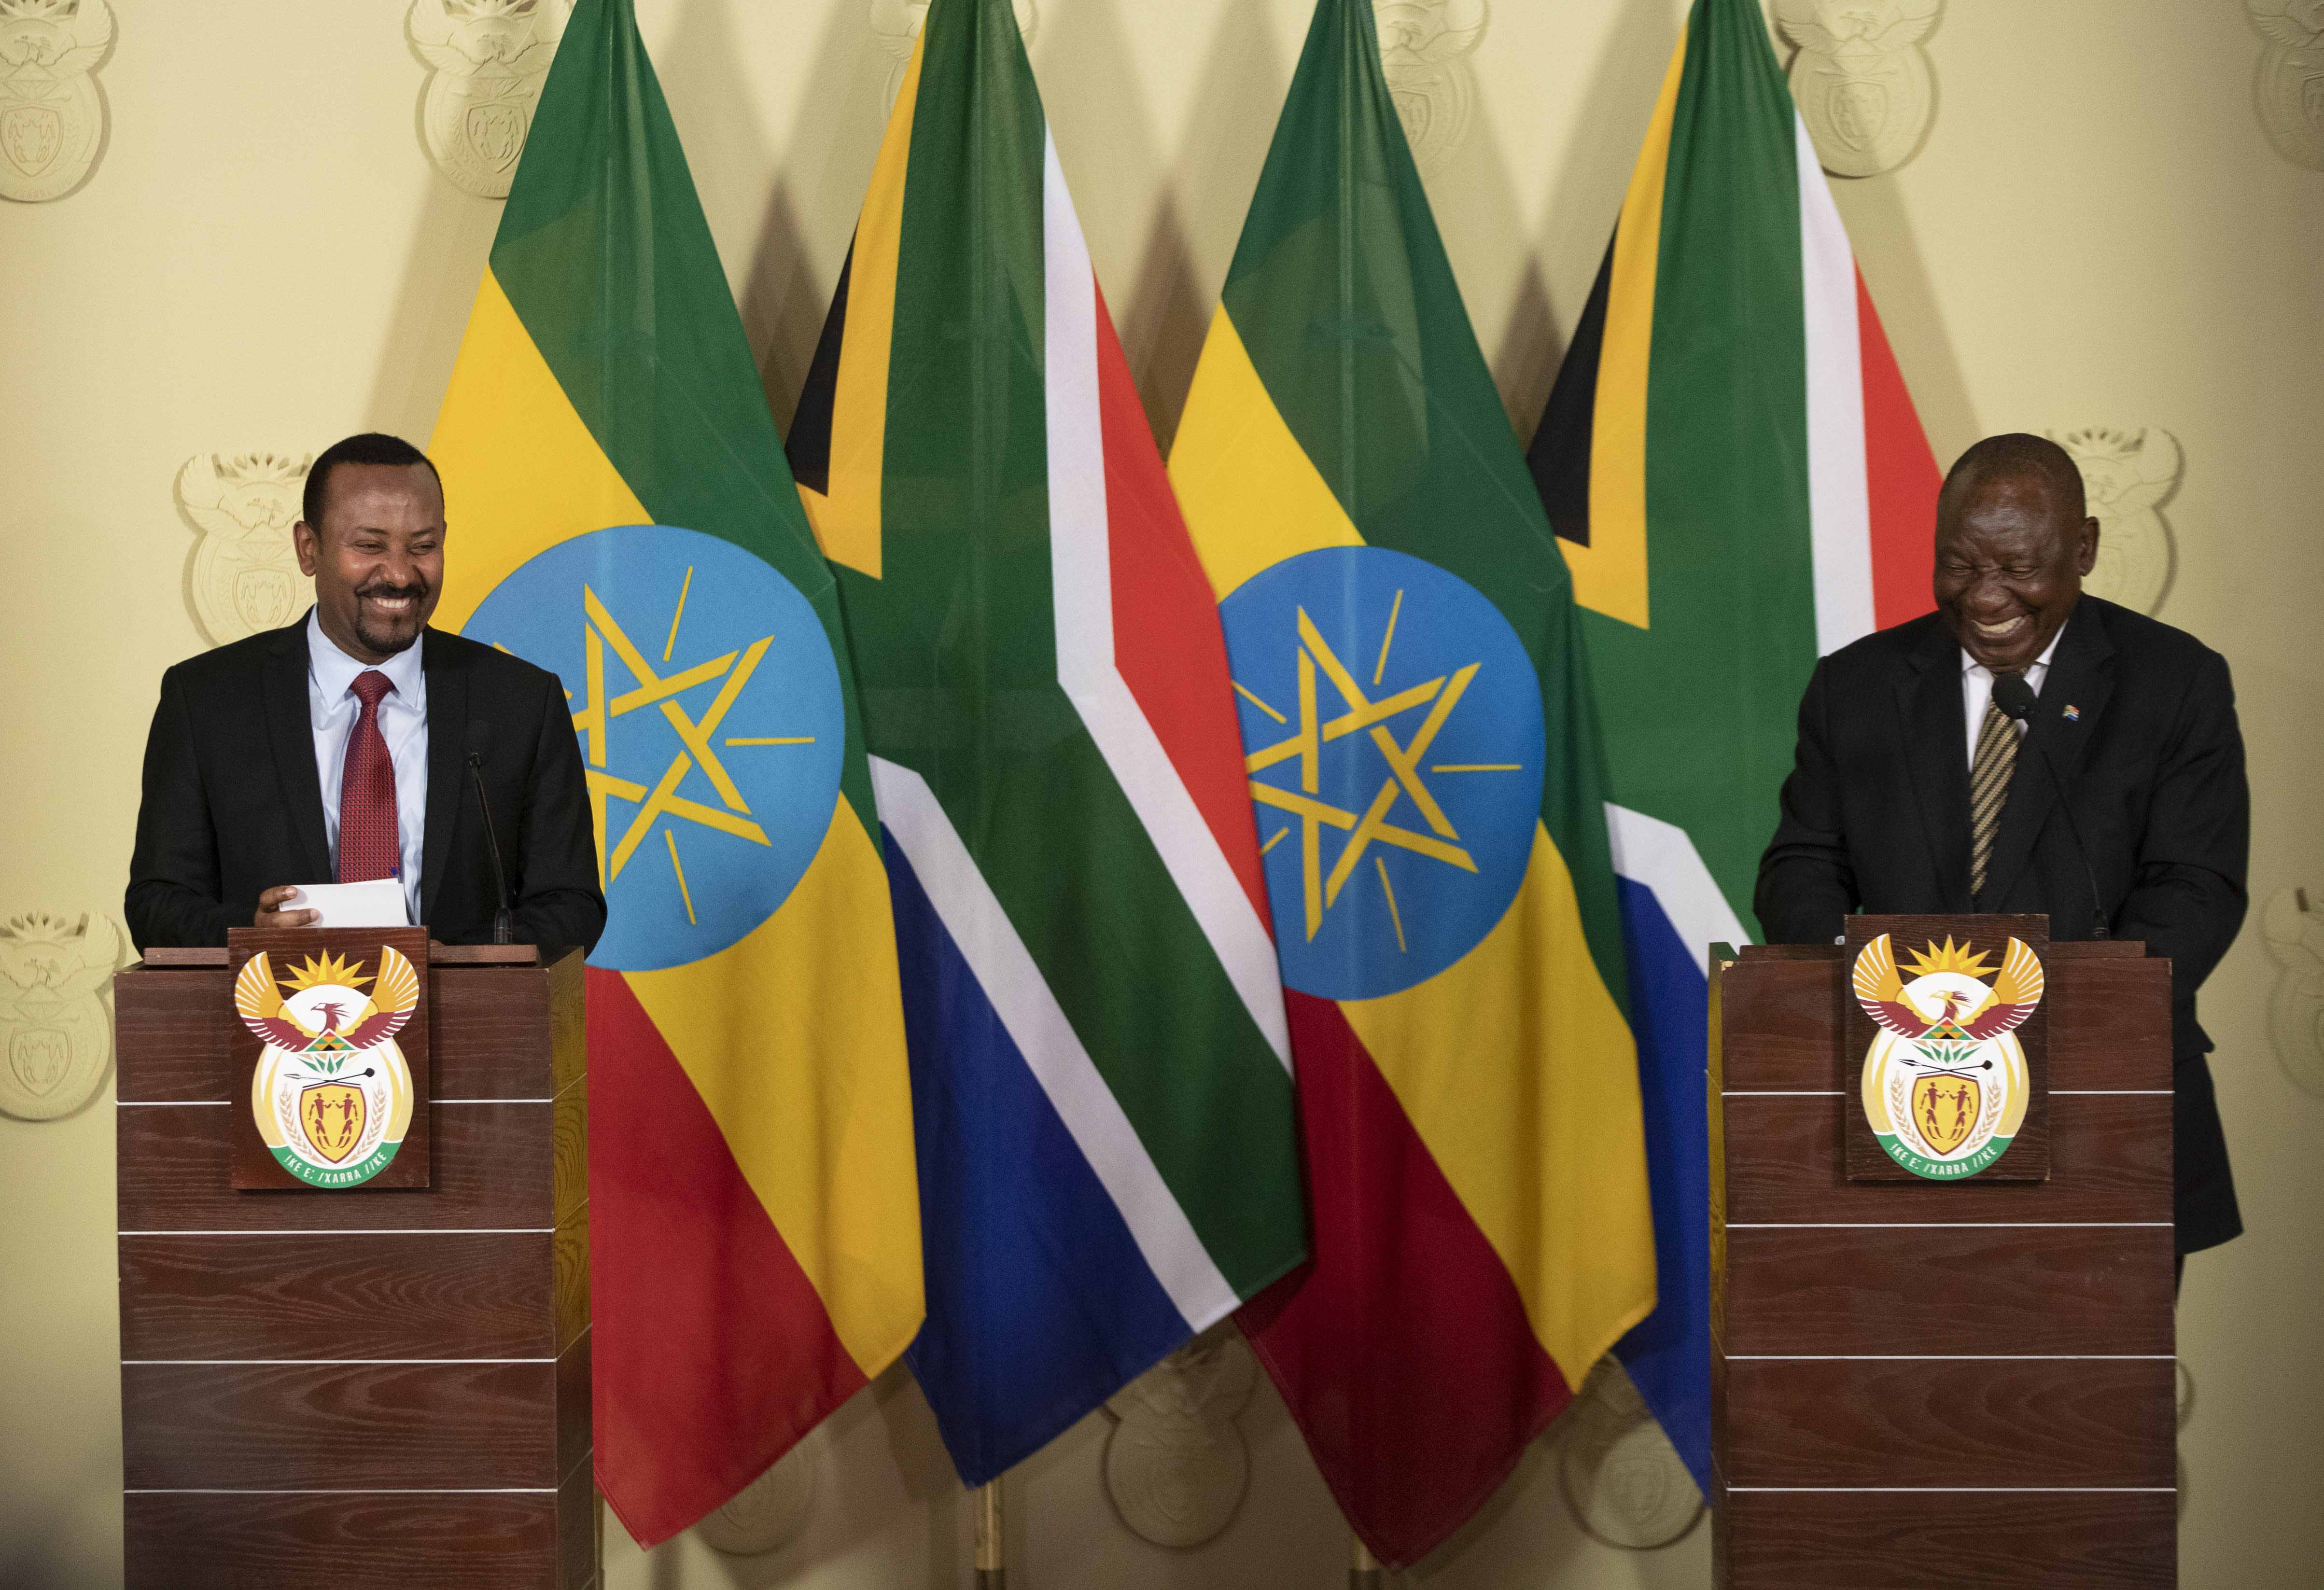 South African President Cyril Ramaphosa, right, shares a light moment with Ethiopia's Prime Minister Abiy Ahmed during their joint media conference at the Union Building in Pretoria, South Africa, Sunday, Jan. 12, 2020. (AP Photo/Themba Hadebe)